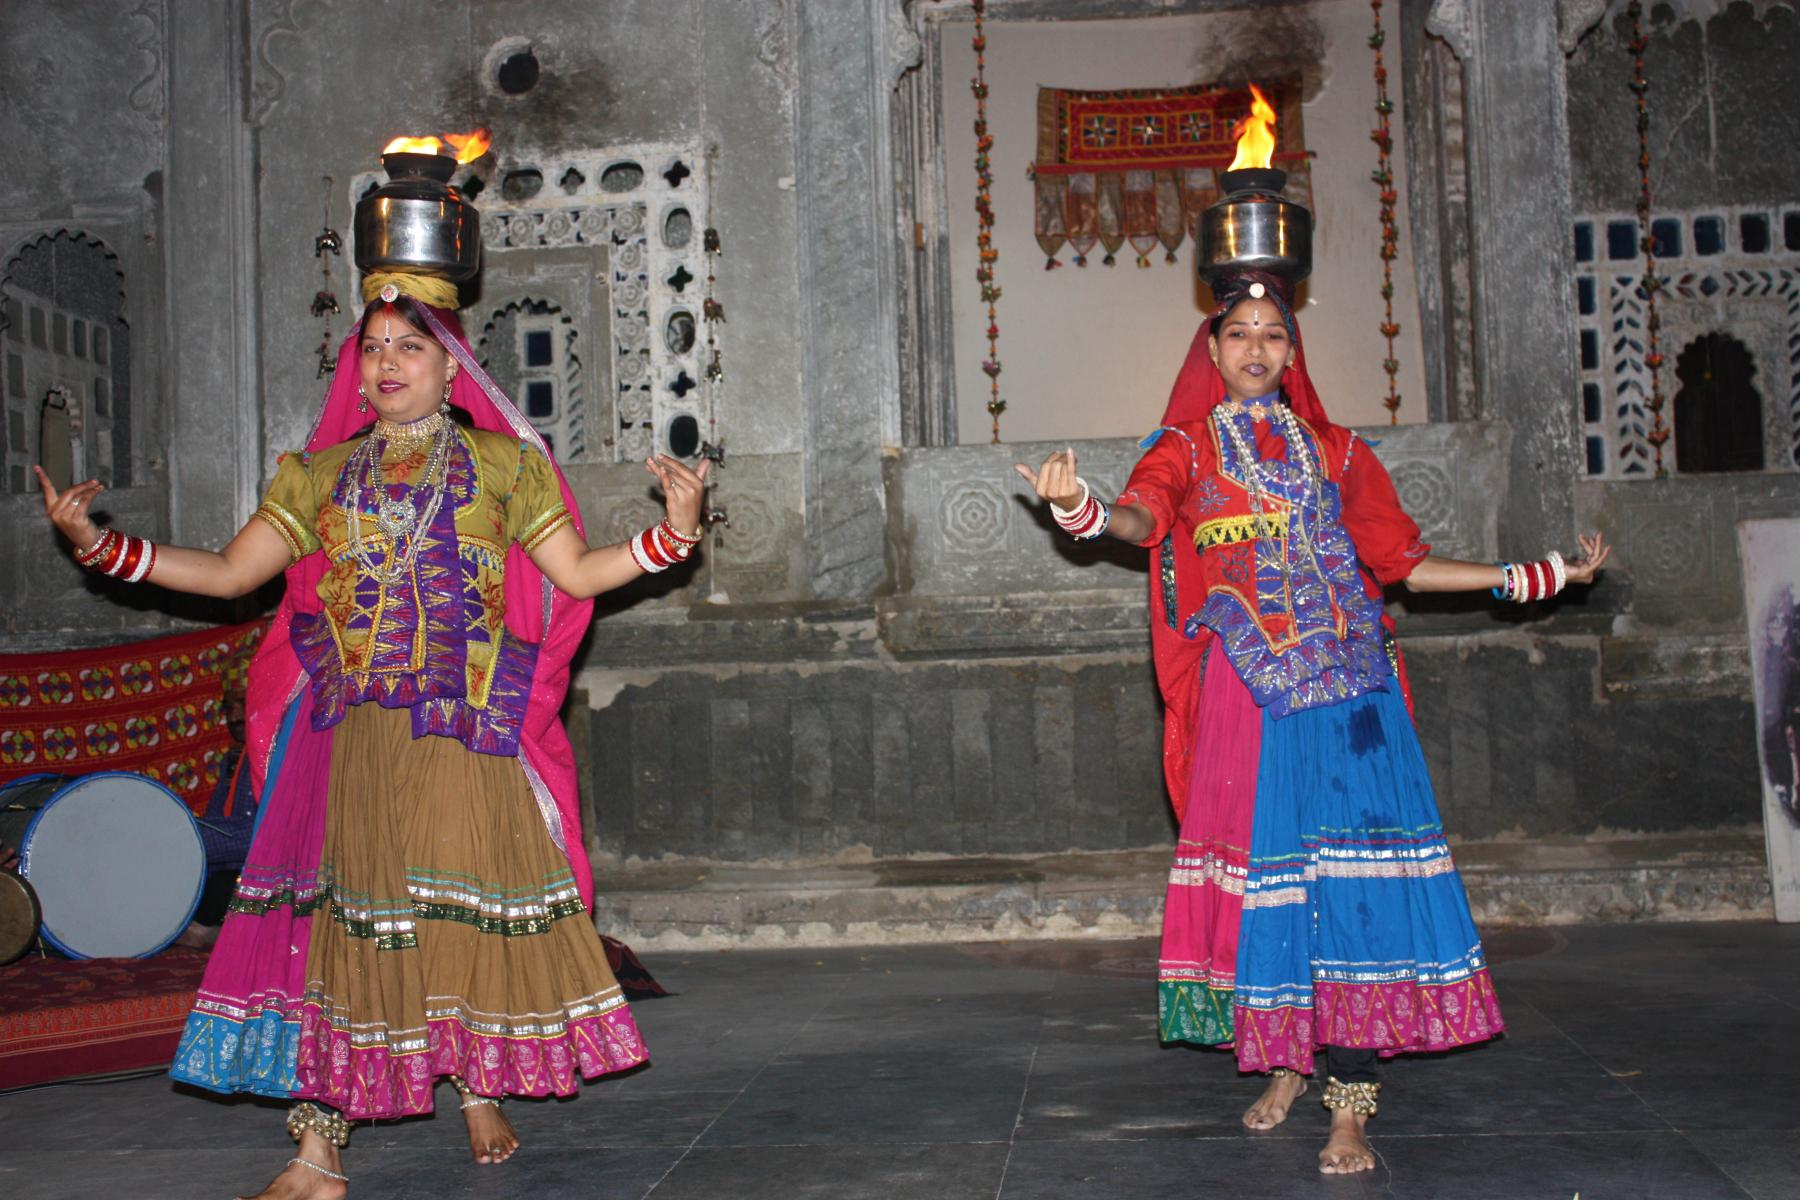 Grand Rajasthan Tour + Agra + New Delhi  - Rerun starting at Rajasthan, India